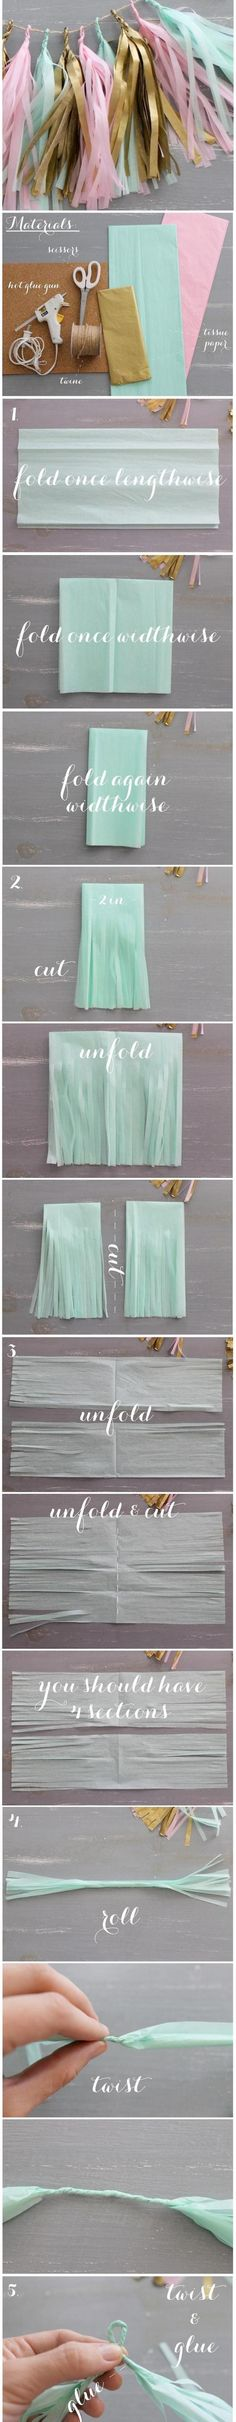 DIY Tassel Garland in pretty pastels. Perfect for any celebration from baby showers to first birthday parties. #ChairDIY